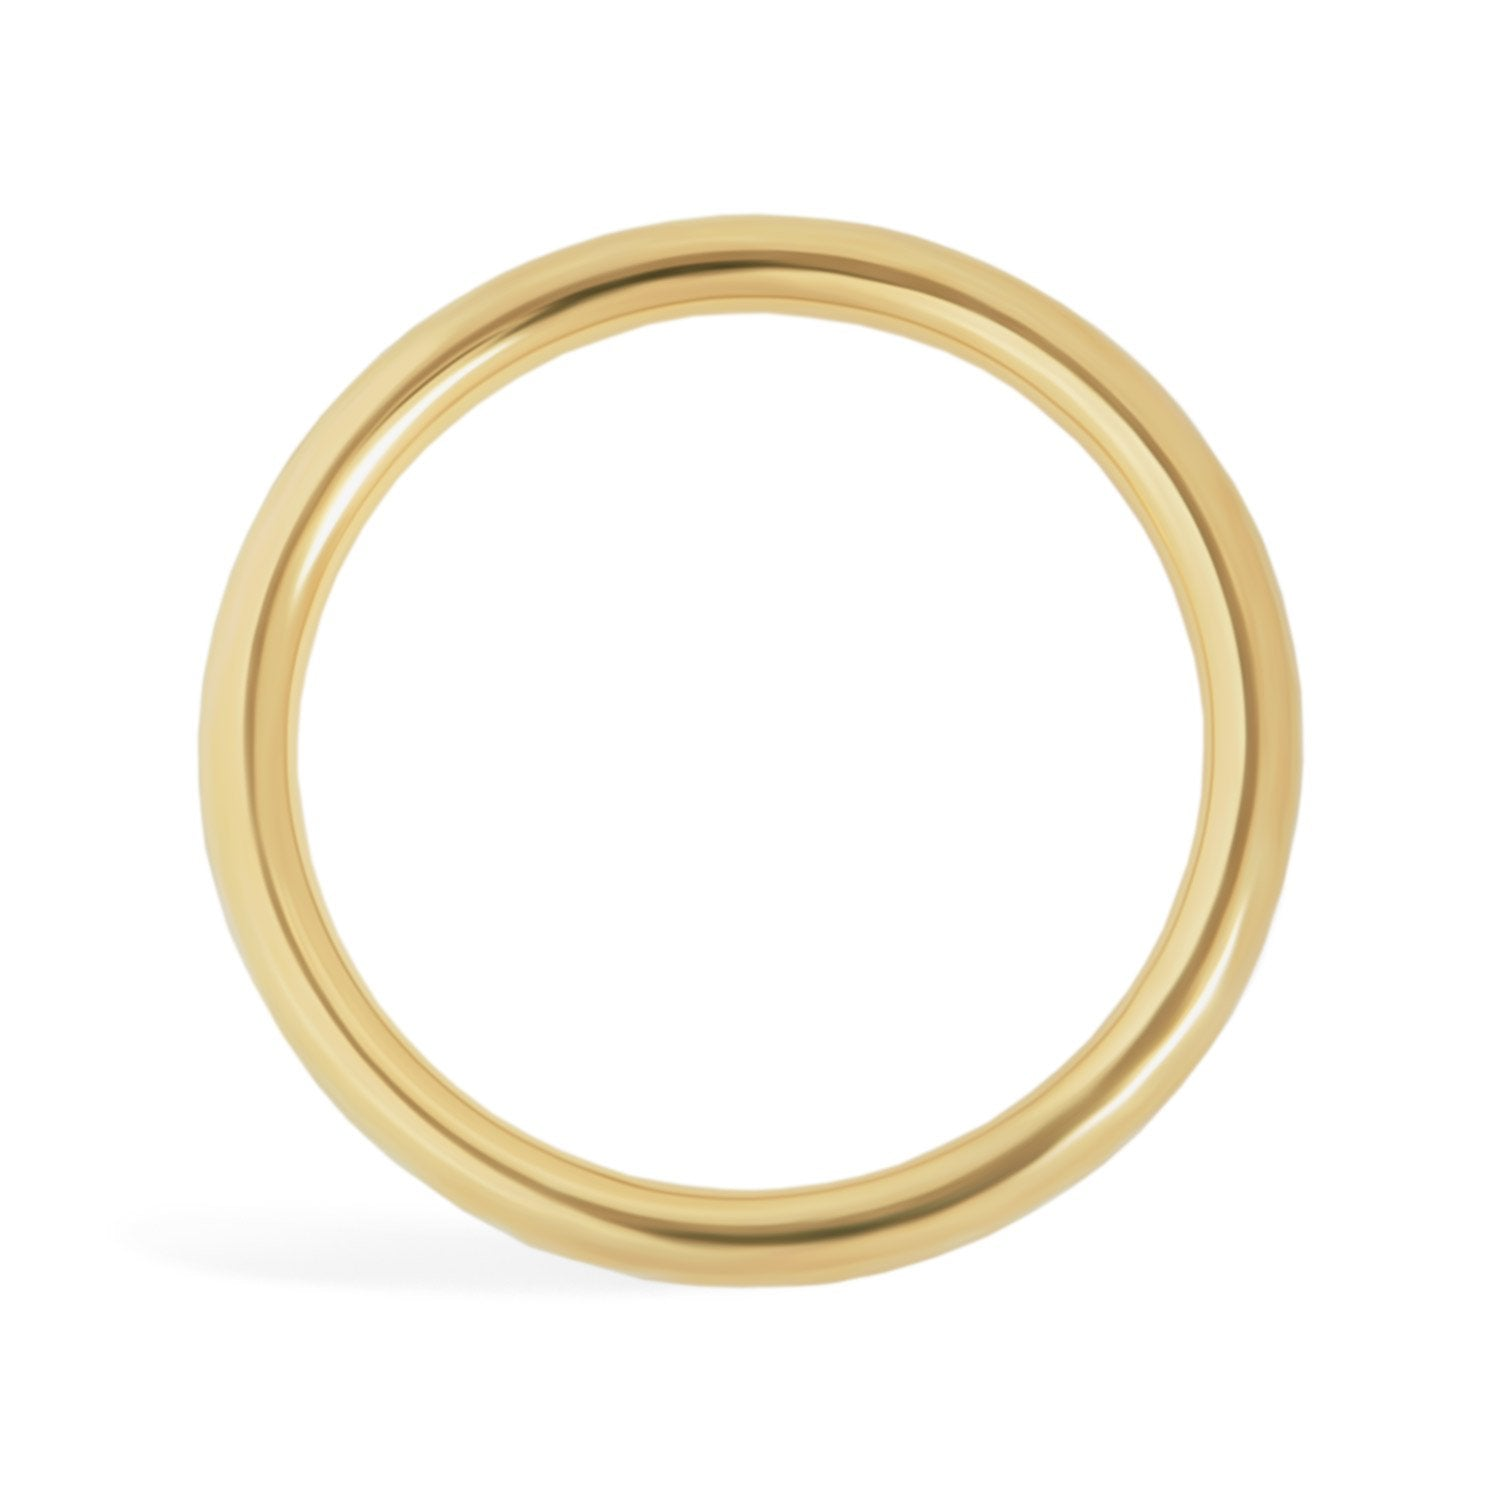 Elementary Ring 2.0 gold